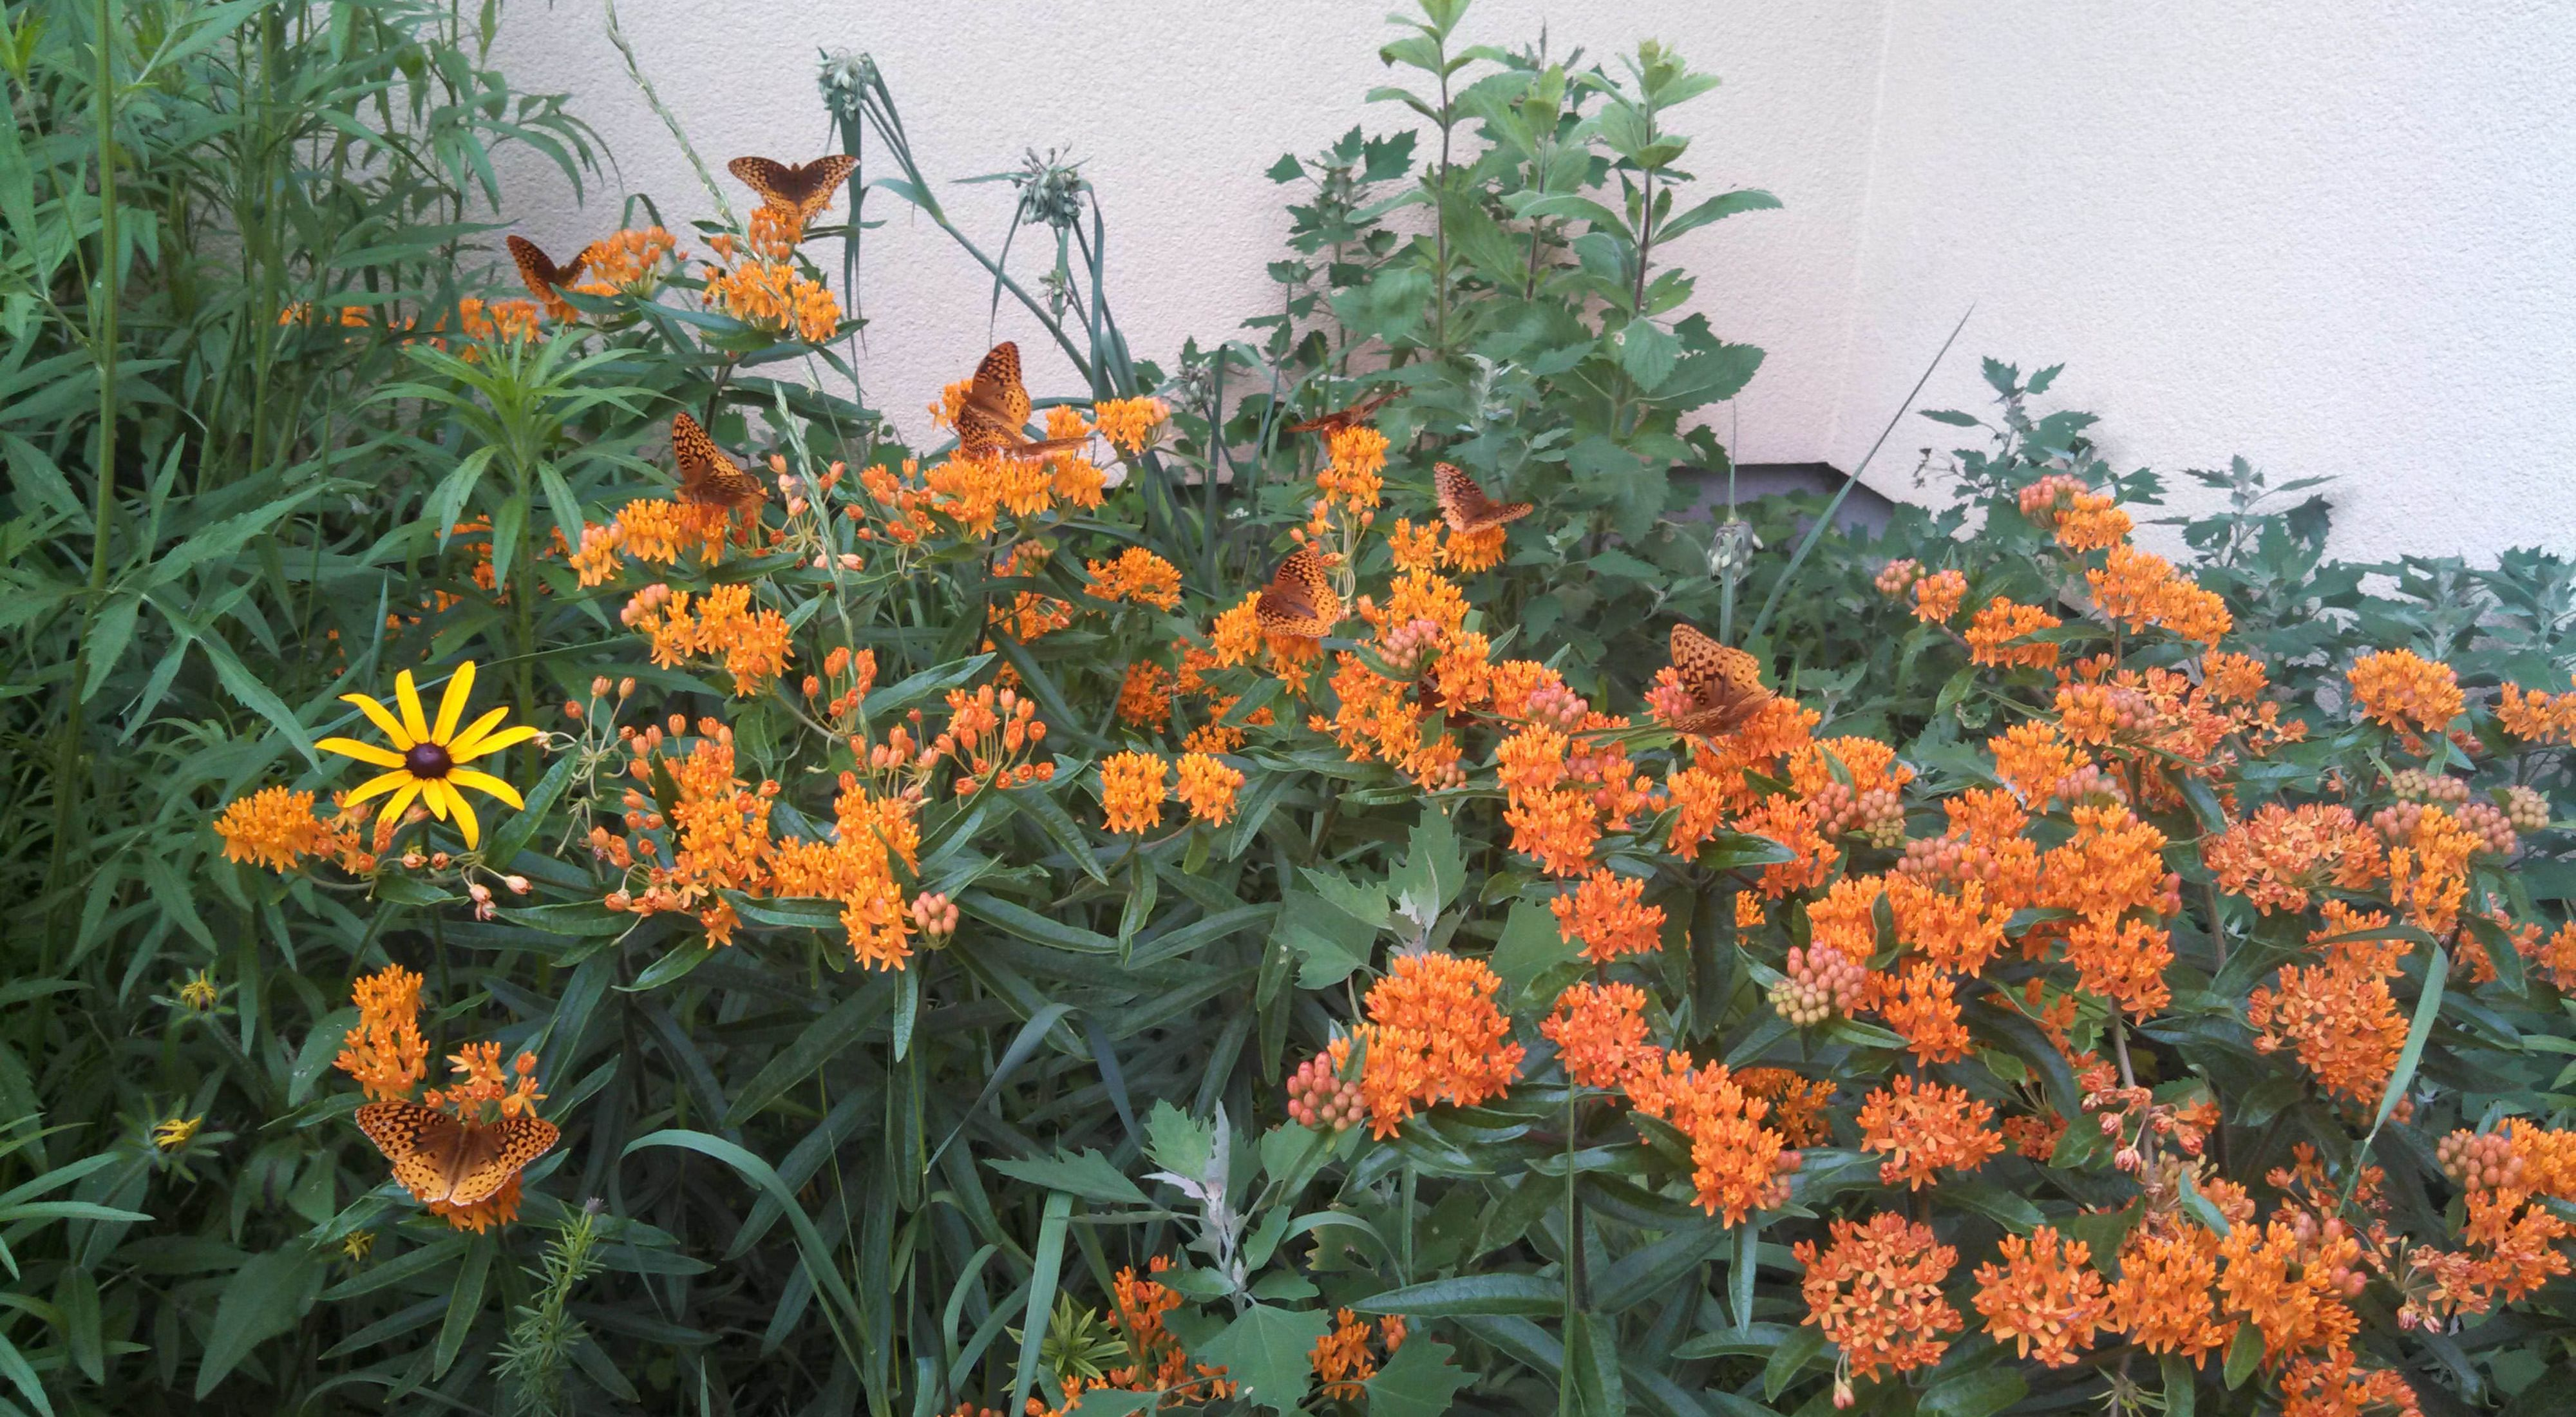 A group of brown and orange butterflies on a dense patch of orange flowers in front of the white exterior wall of a building.